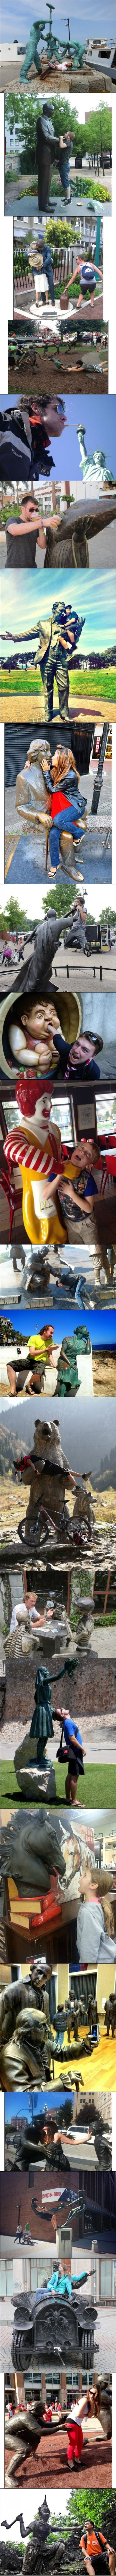 Taking Pictures With Statues... The Right Way!